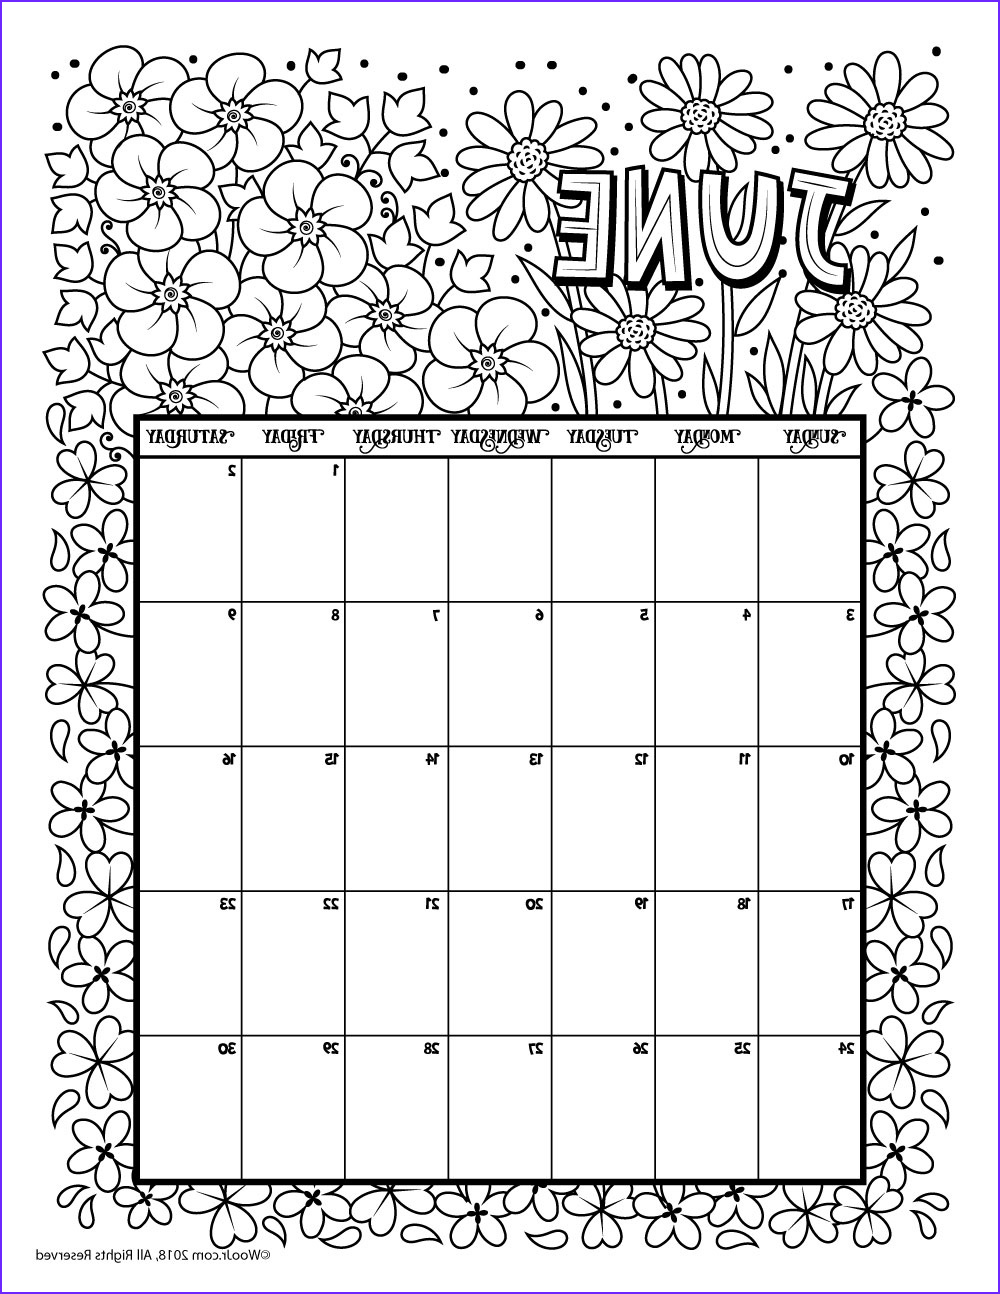 Coloring Calendar 2018 Best Of Photos June 2018 Coloring Calendar Page